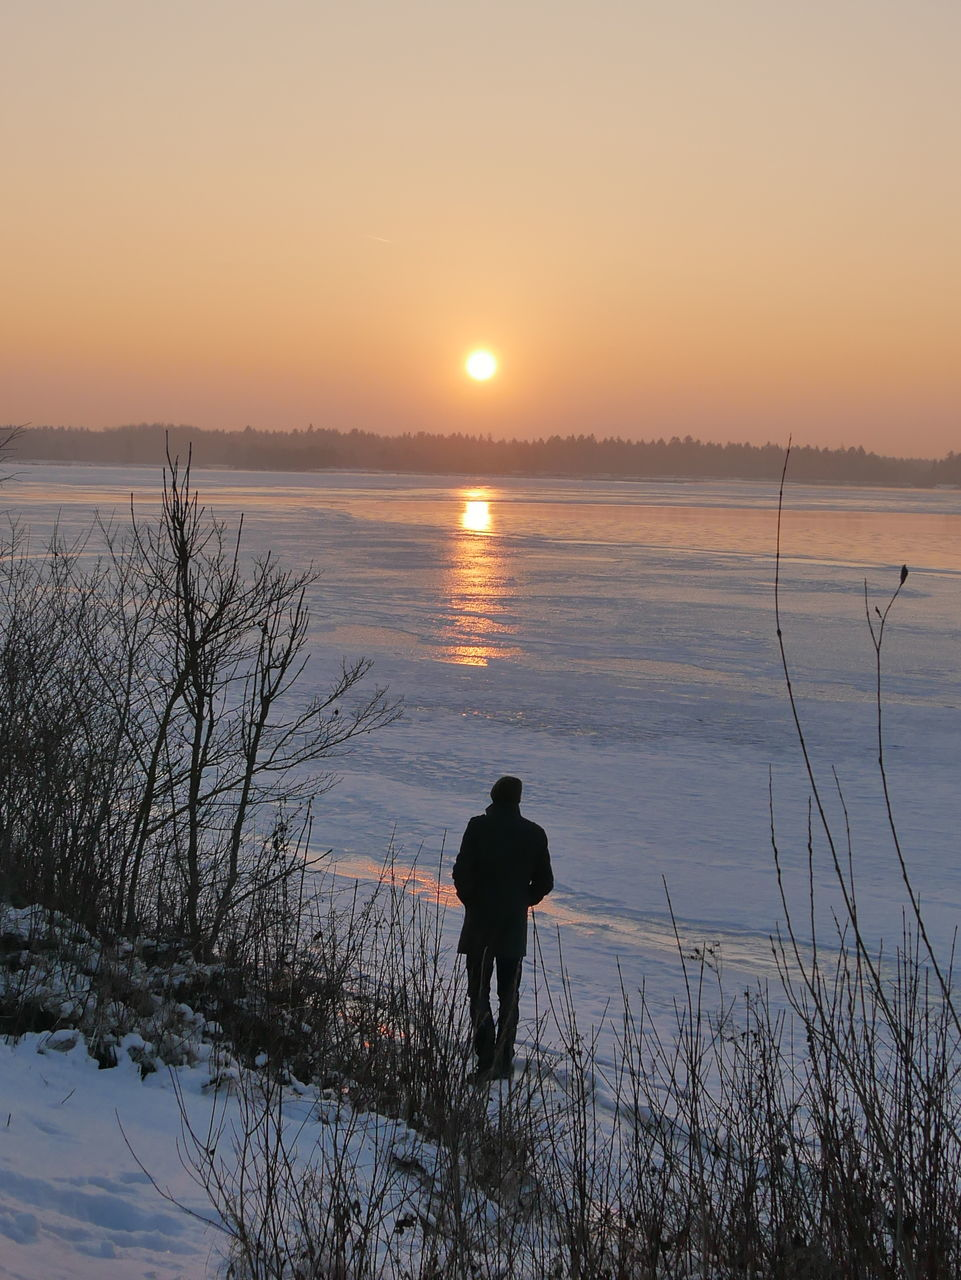 sunset, nature, beauty in nature, silhouette, water, sun, real people, tranquil scene, tranquility, scenics, one person, winter, reflection, sky, leisure activity, cold temperature, rear view, sunlight, outdoors, standing, full length, lake, snow, men, lifestyles, day, people